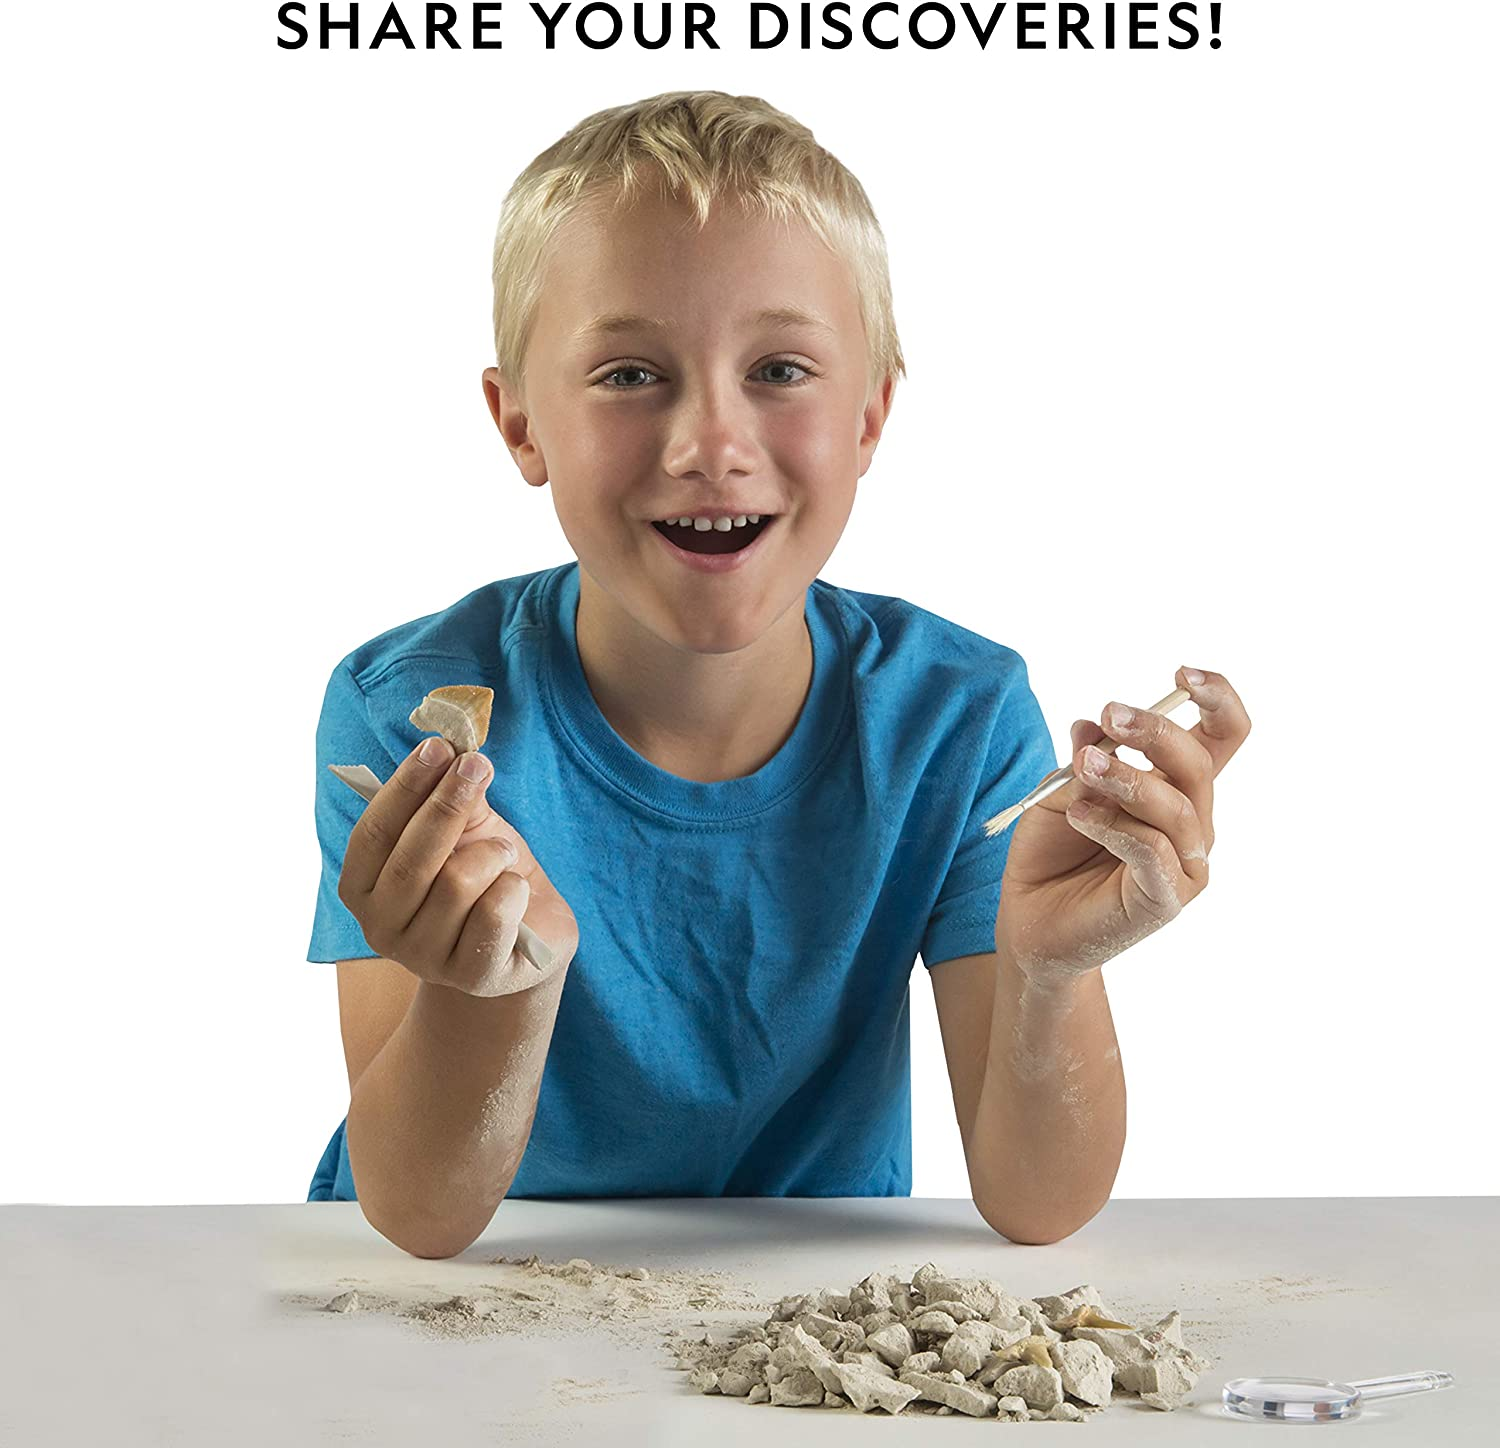 NATIONAL GEOGRAPHIC Mega Fossil Dig Kit Excavate 15 Real Fossils Including Dinosaur Bones /& Shark Teeth Educational Toys an AMAZON EXCLUSIVE Science Kit Great Gift for Girls and Boys